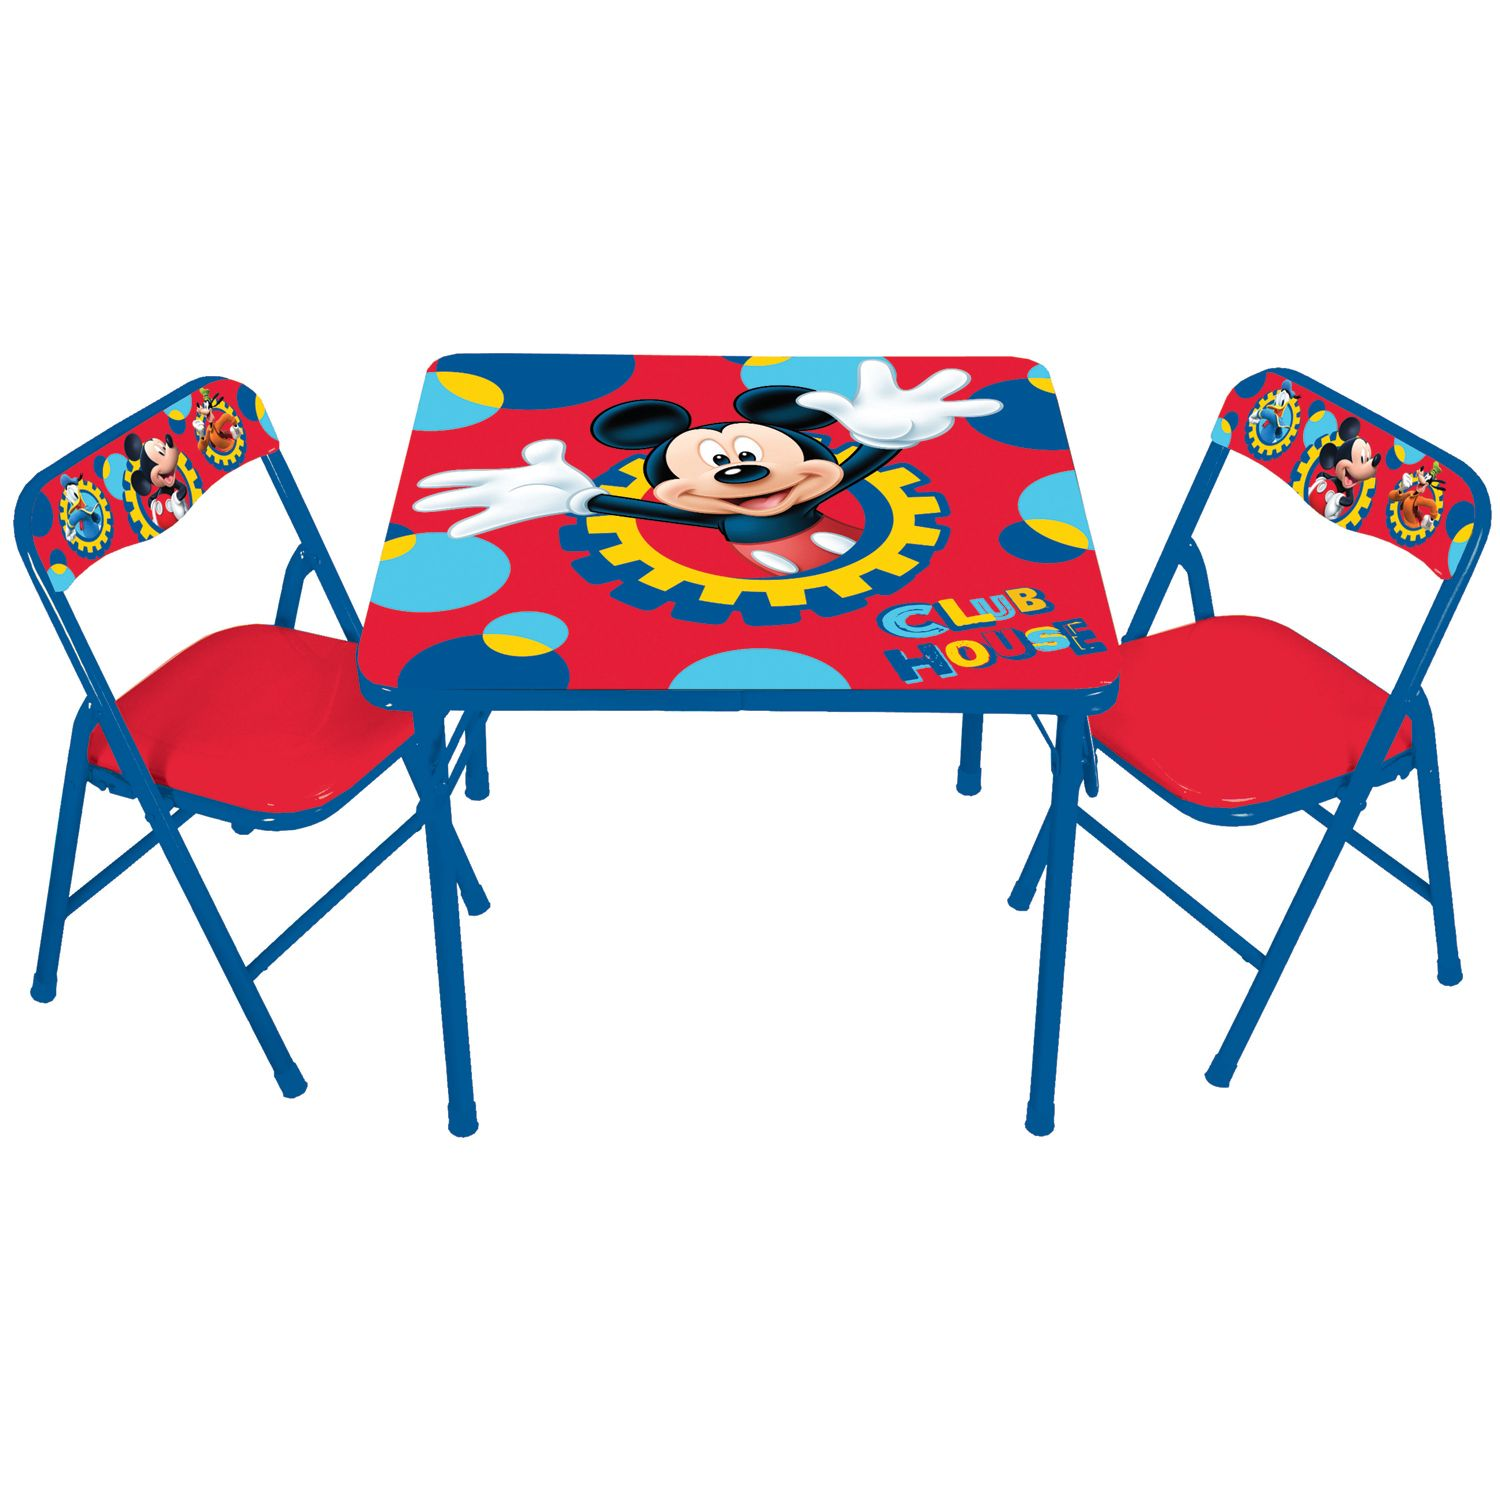 Disney Mickey Mouse U0026 Friends Erasable Activity Table U0026 Chair Set By Kids  Only